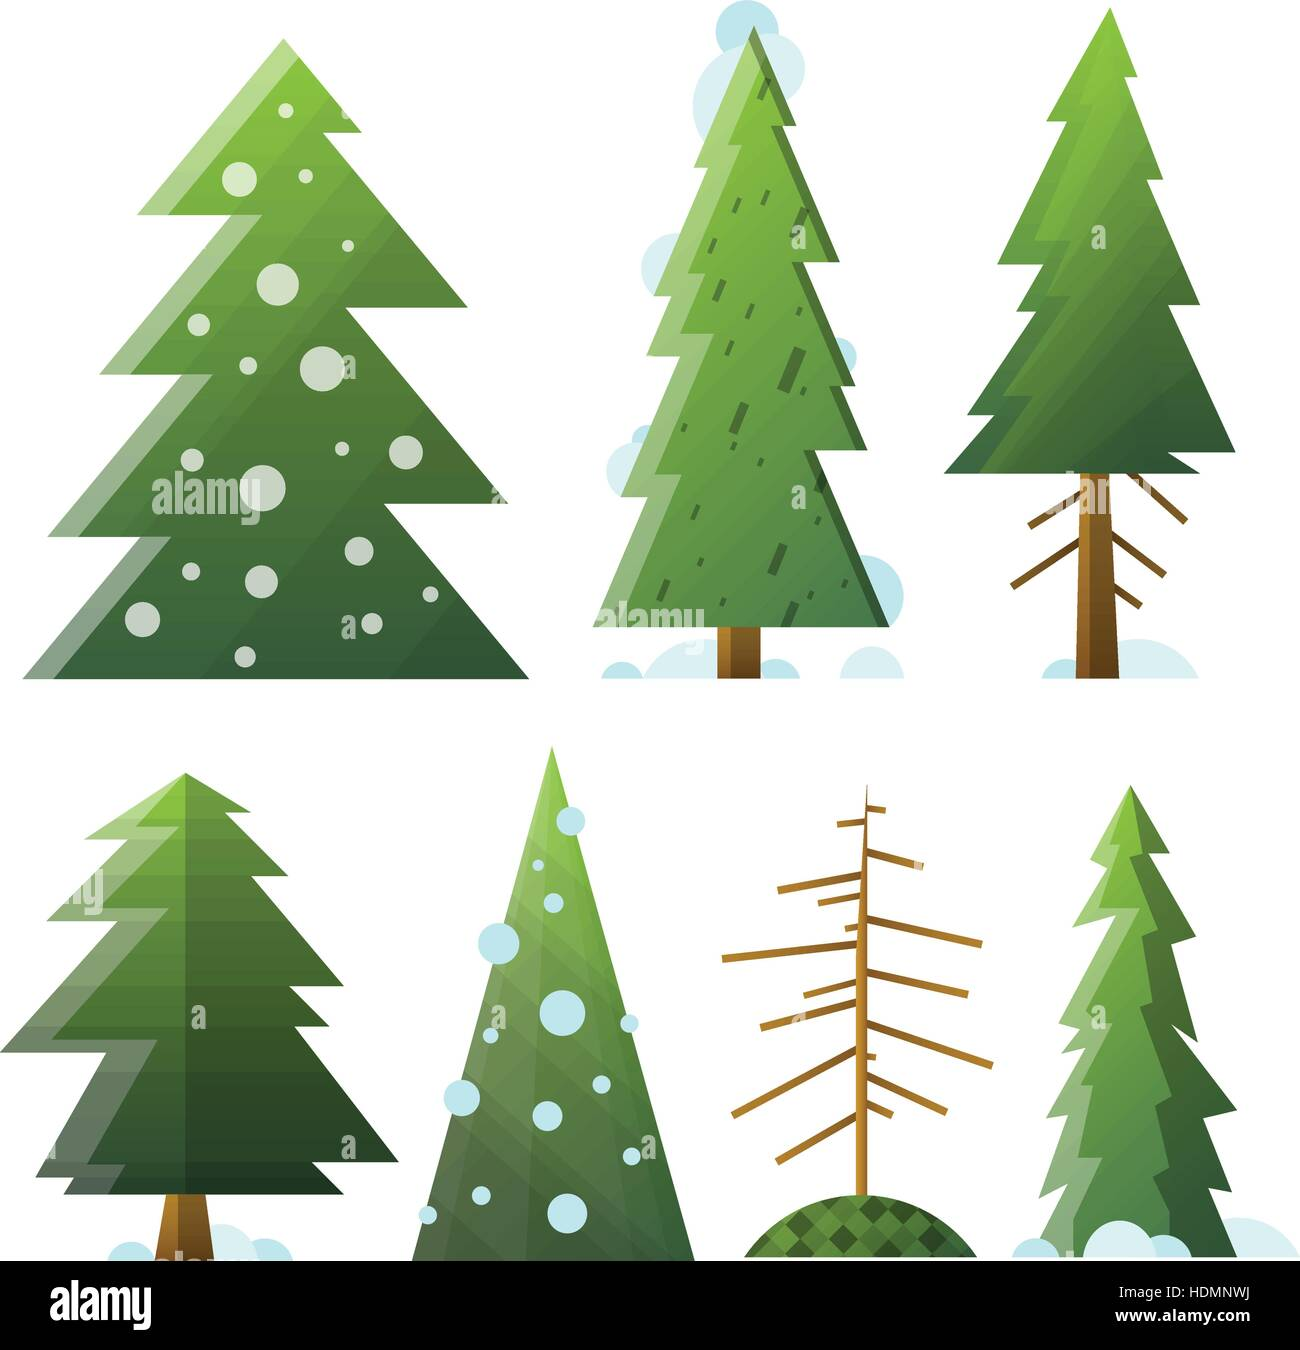 Collection of different cartoon green and dead fir trees. Isolated fir trees with snow for Happy New Year and winter - Stock Vector